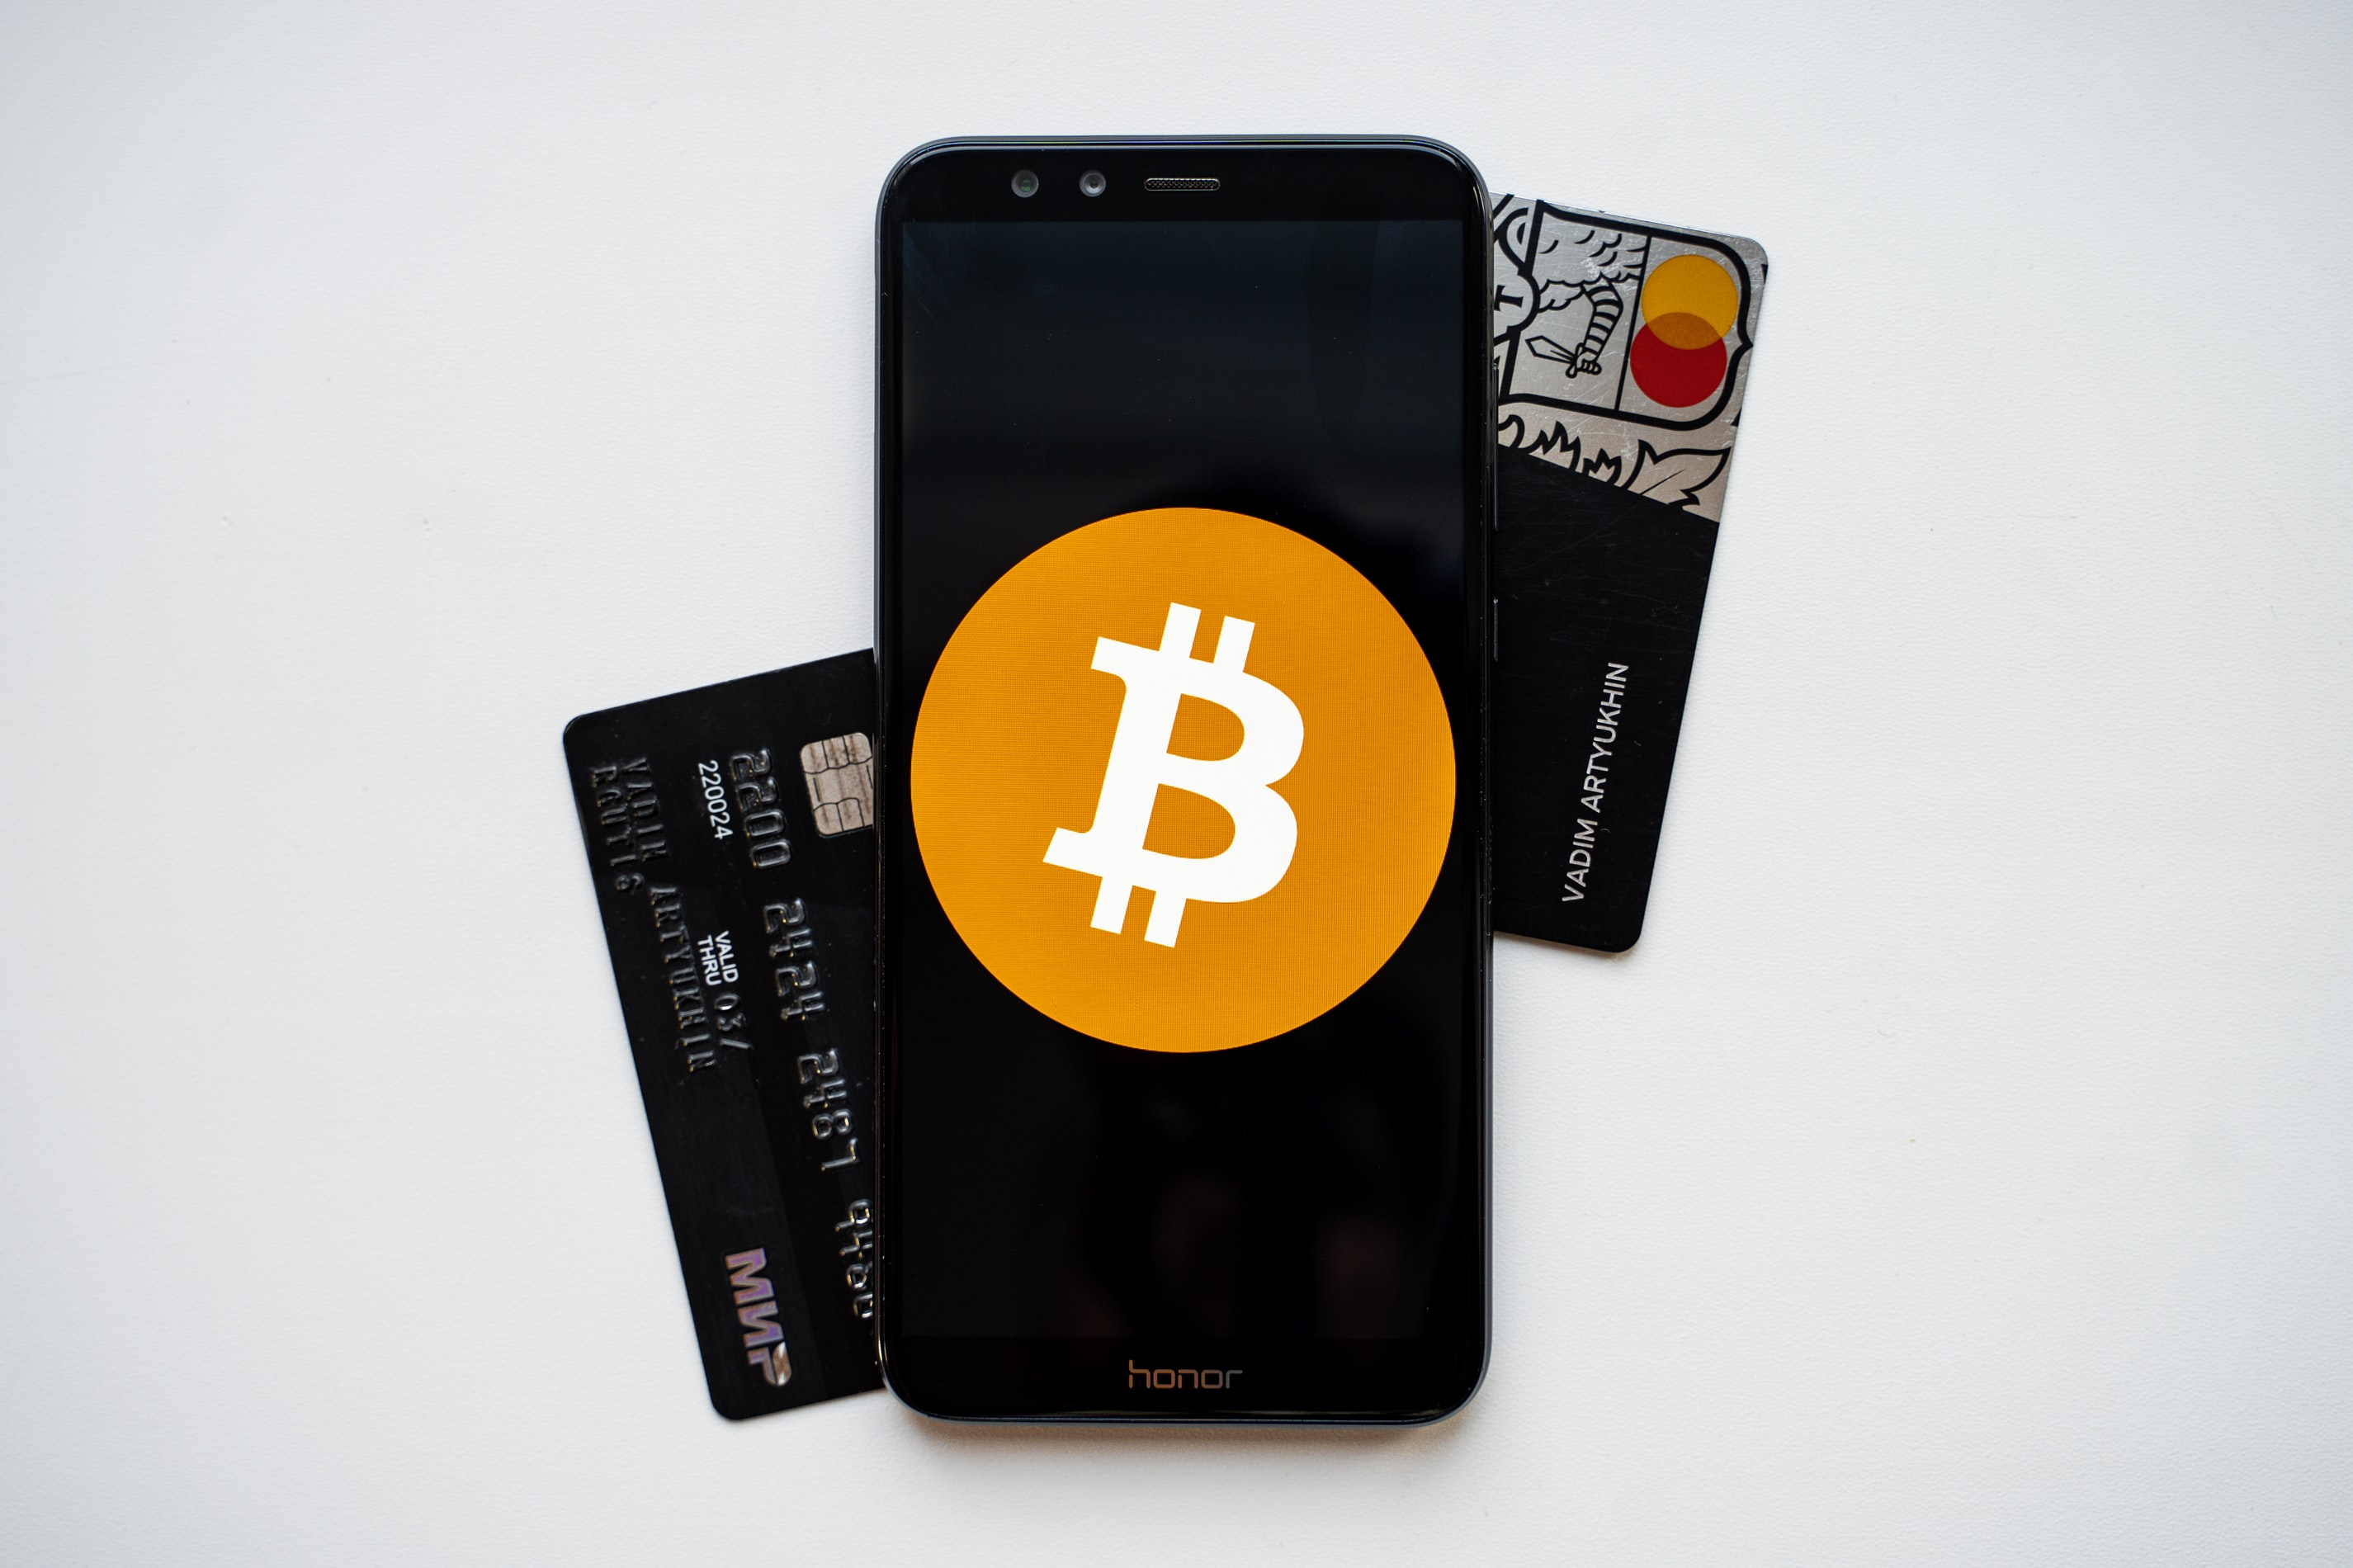 How can one have very safe and smooth use of a bitcoin wallet?